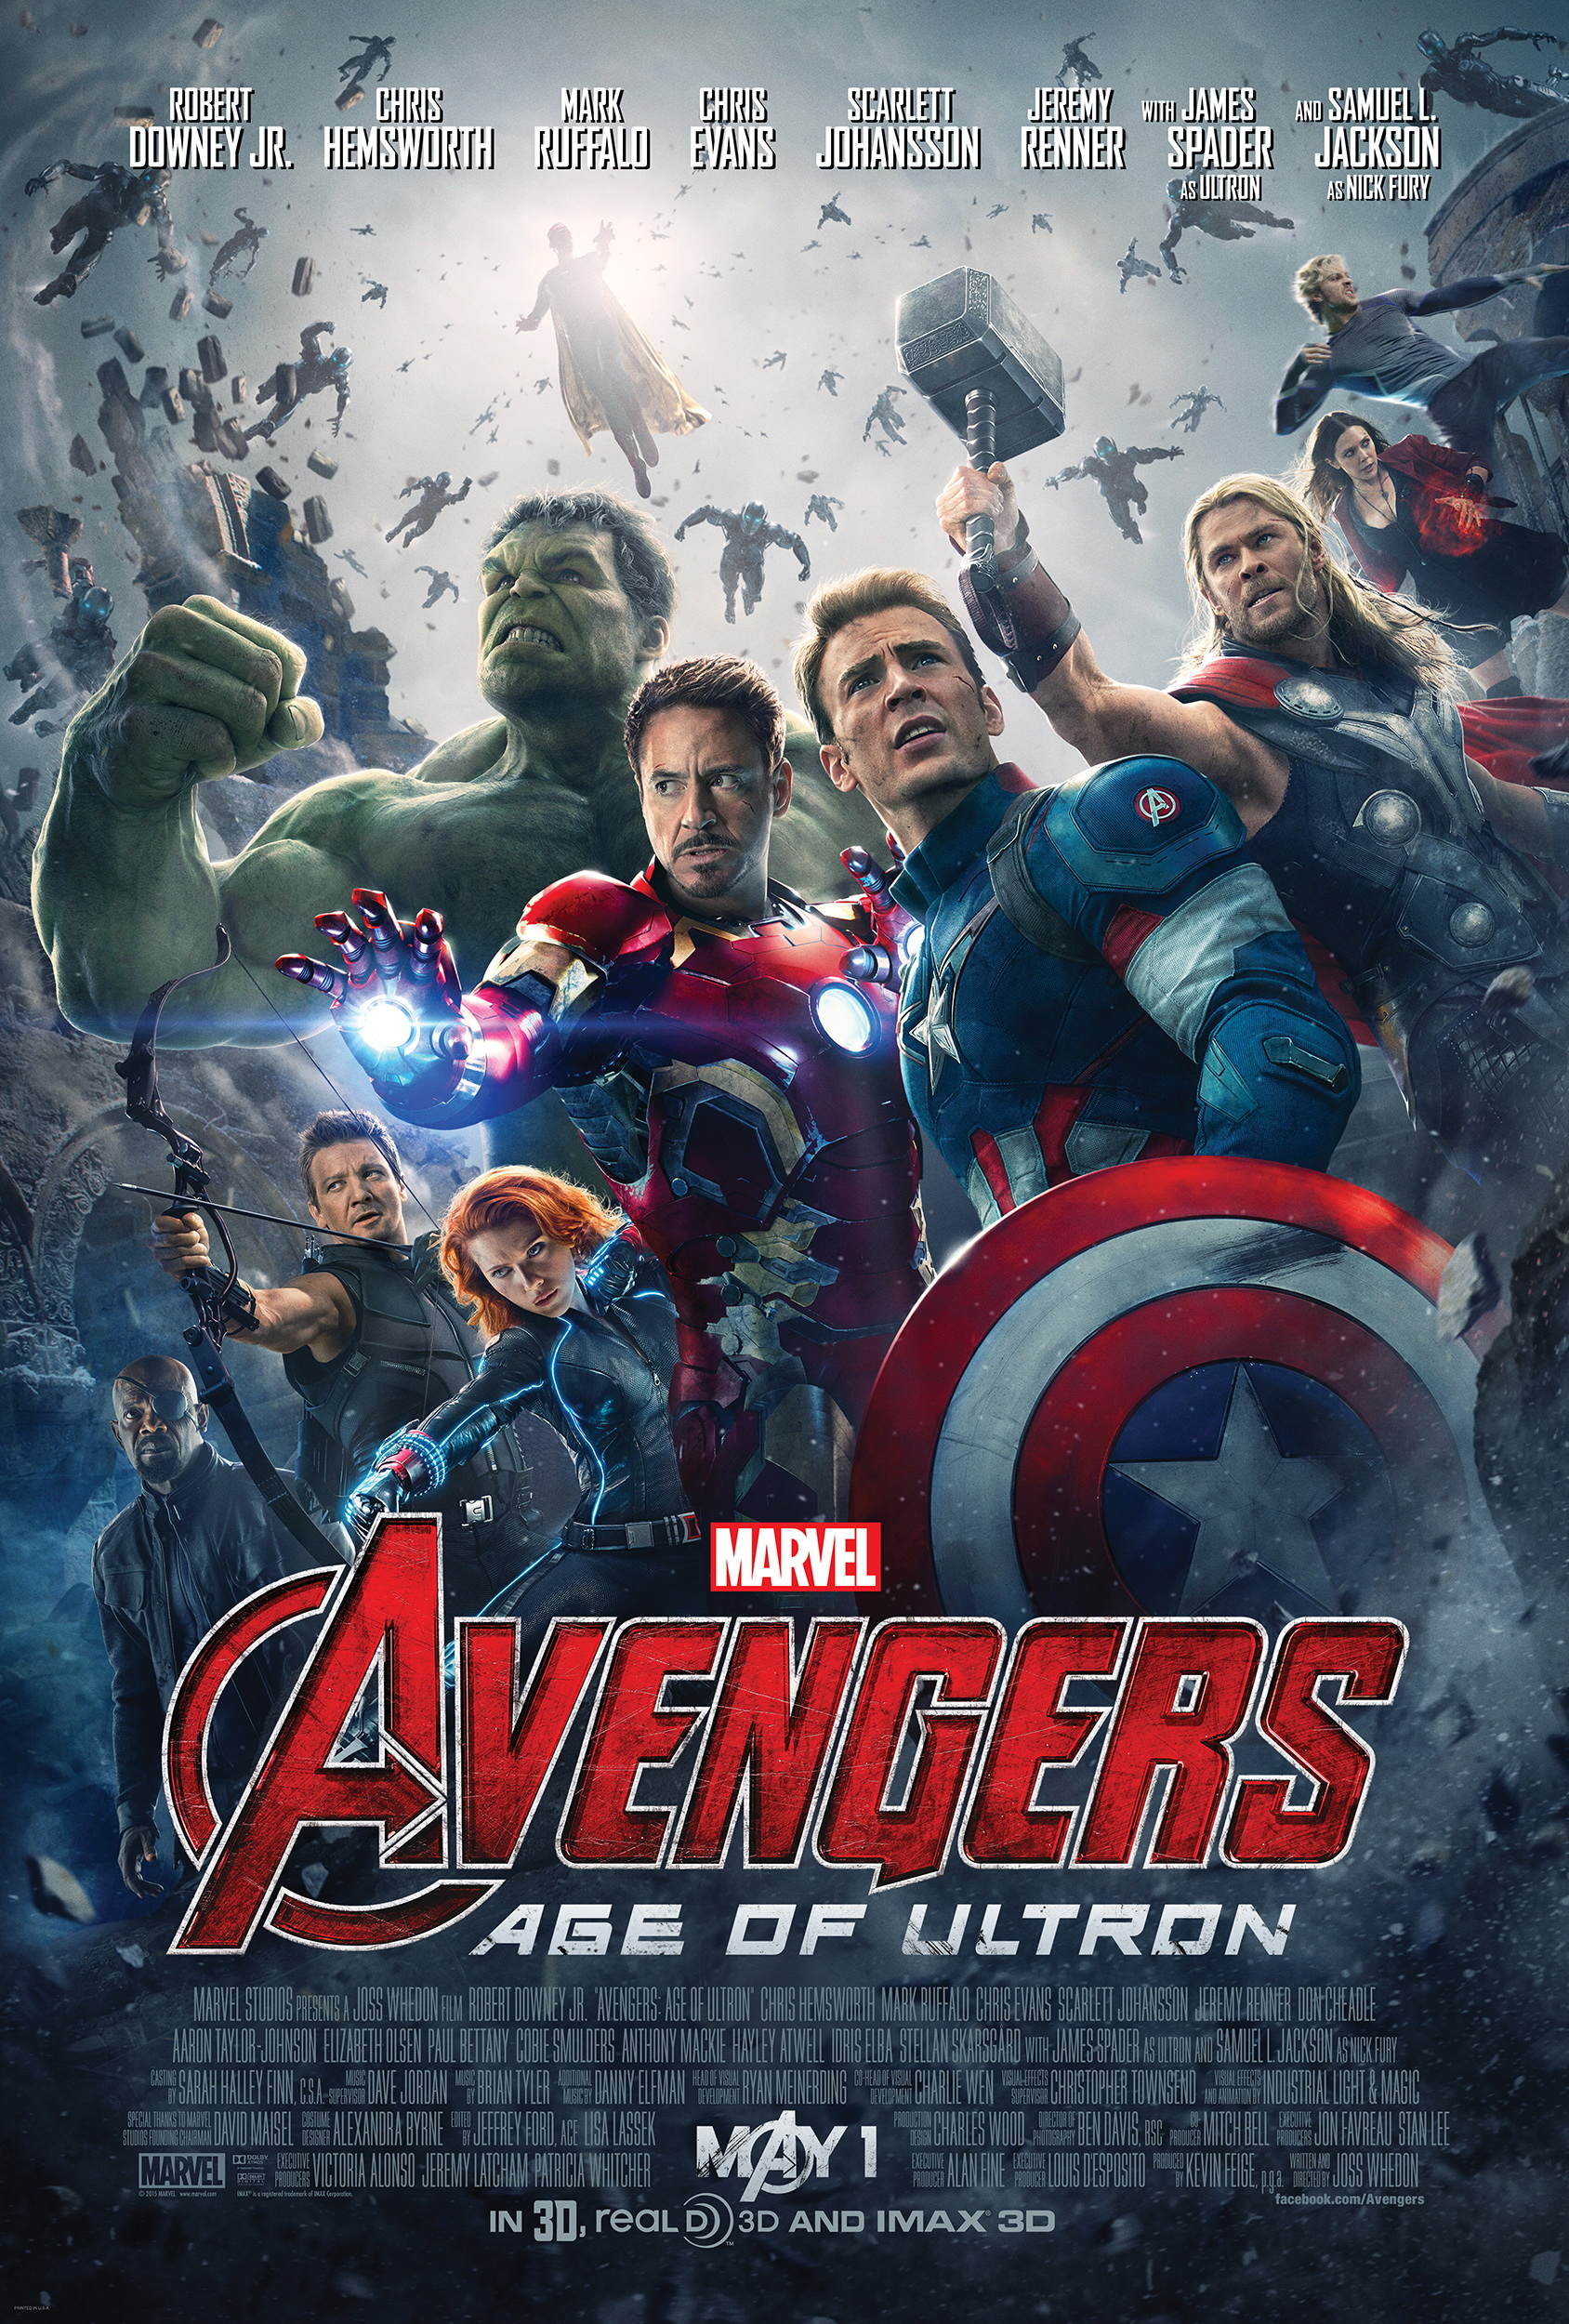 Avengers: Age of Ultron | Marvel Cinematic Universe Wiki | FANDOM